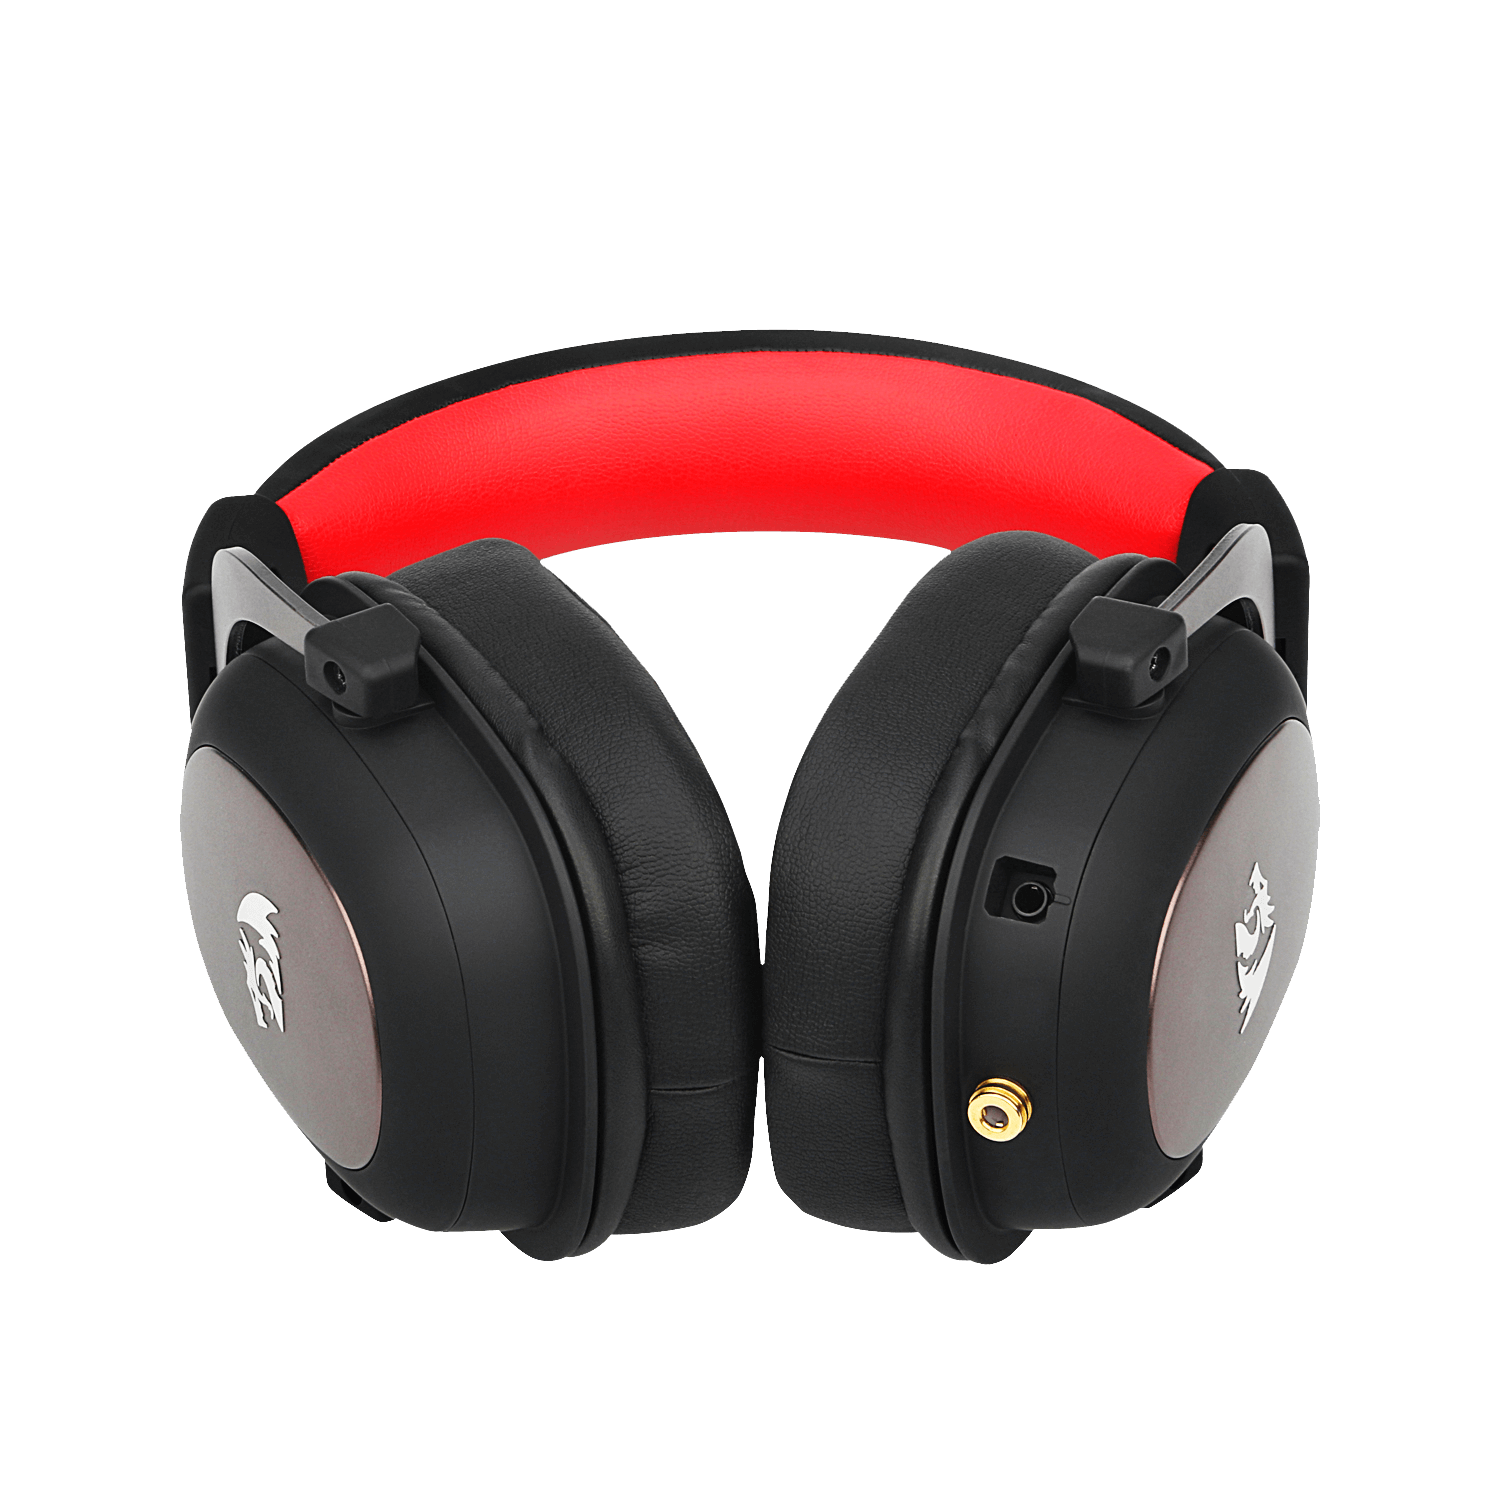 Redragon H510 Zeus Wired Gaming Headset 7.1 Surround Sound Multi Platforms Headphone Works PC Phone PS5/4/3 Xbox One/Series X NS enlarge